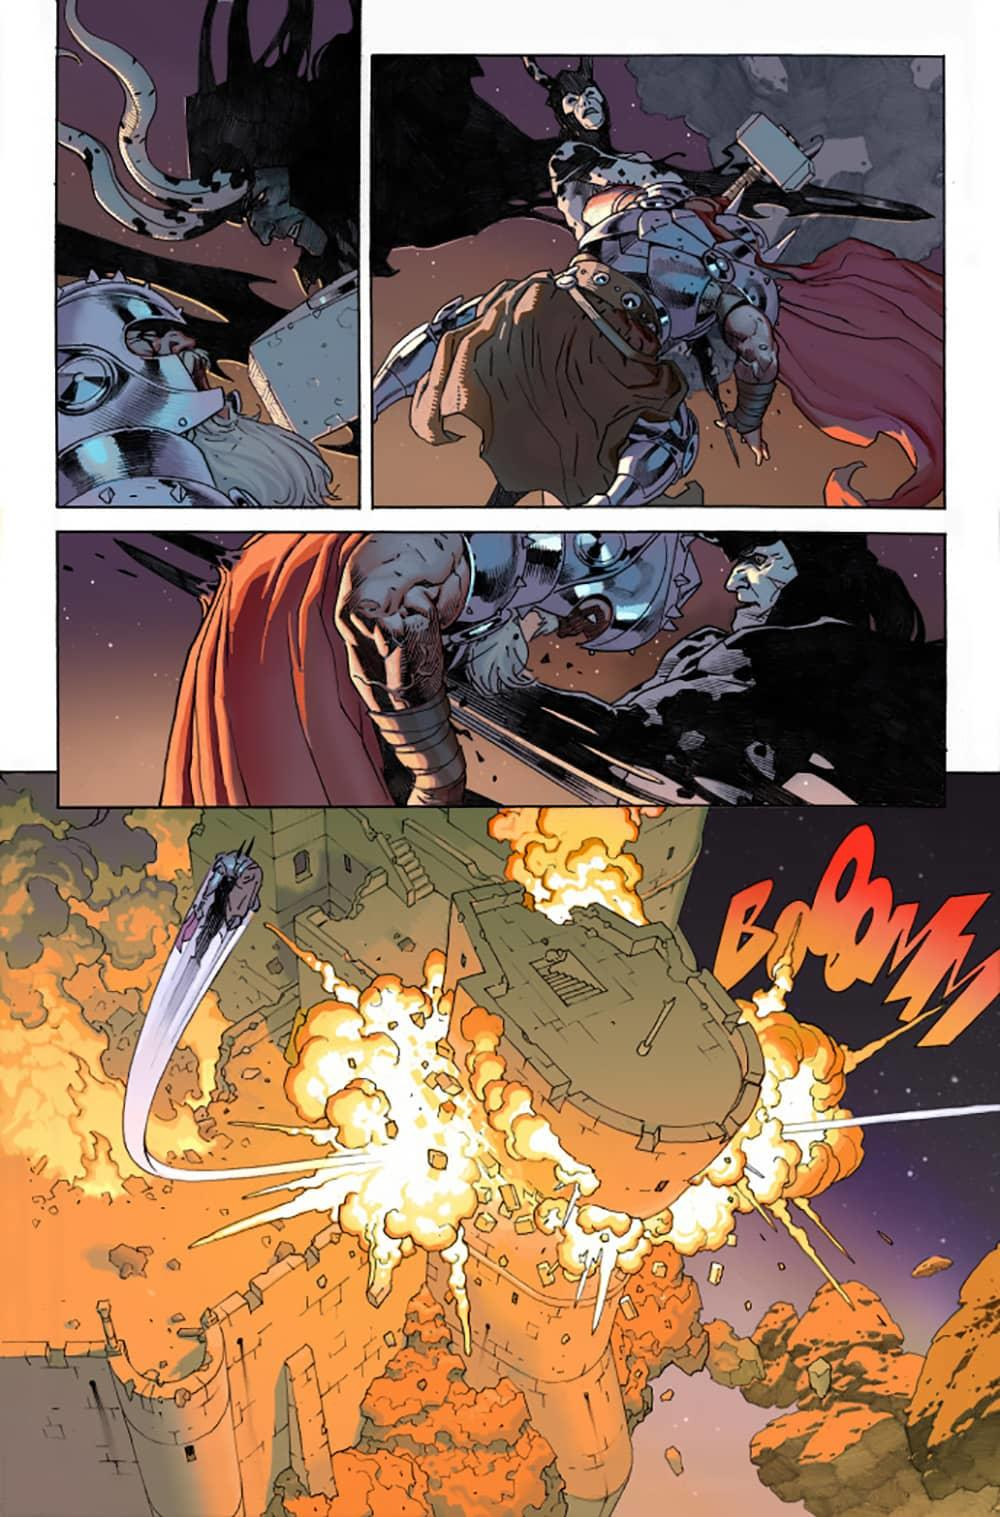 king_thor_1-7color